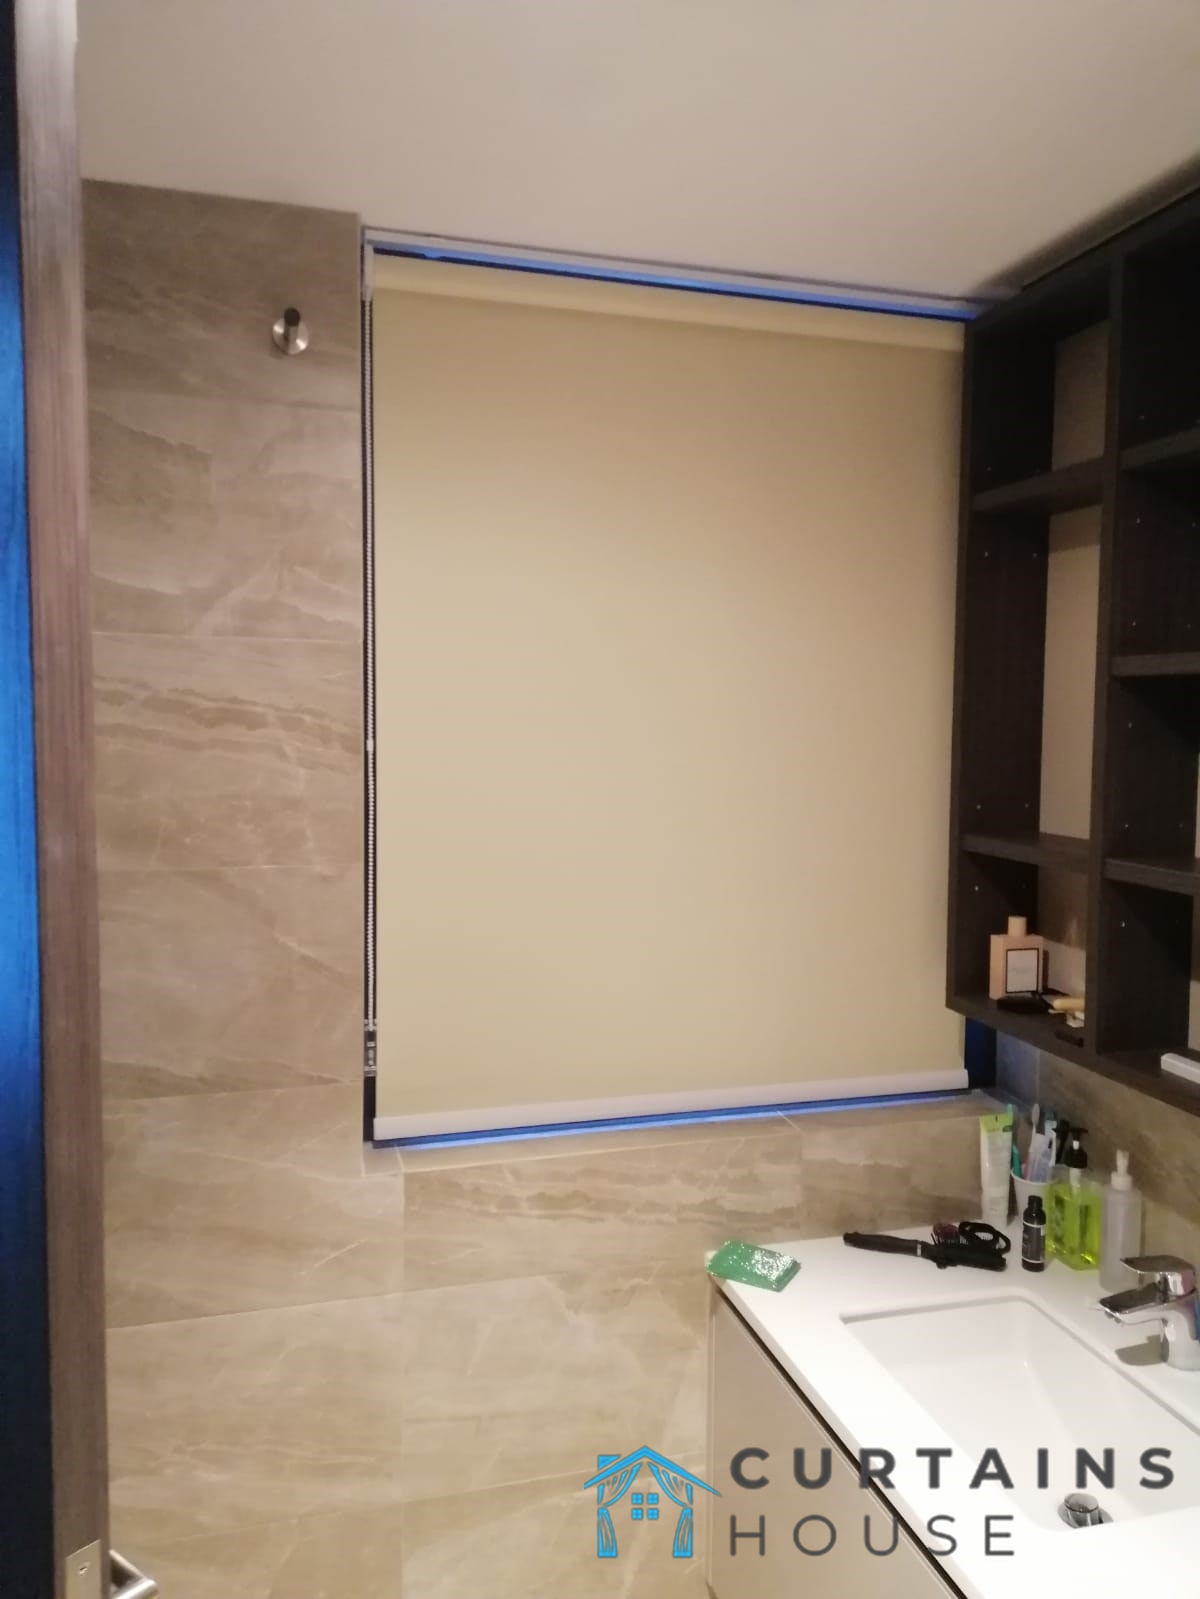 Bathroom Roller Blinds Installation Curtains House Singapore Condo – Tanjong Pagar